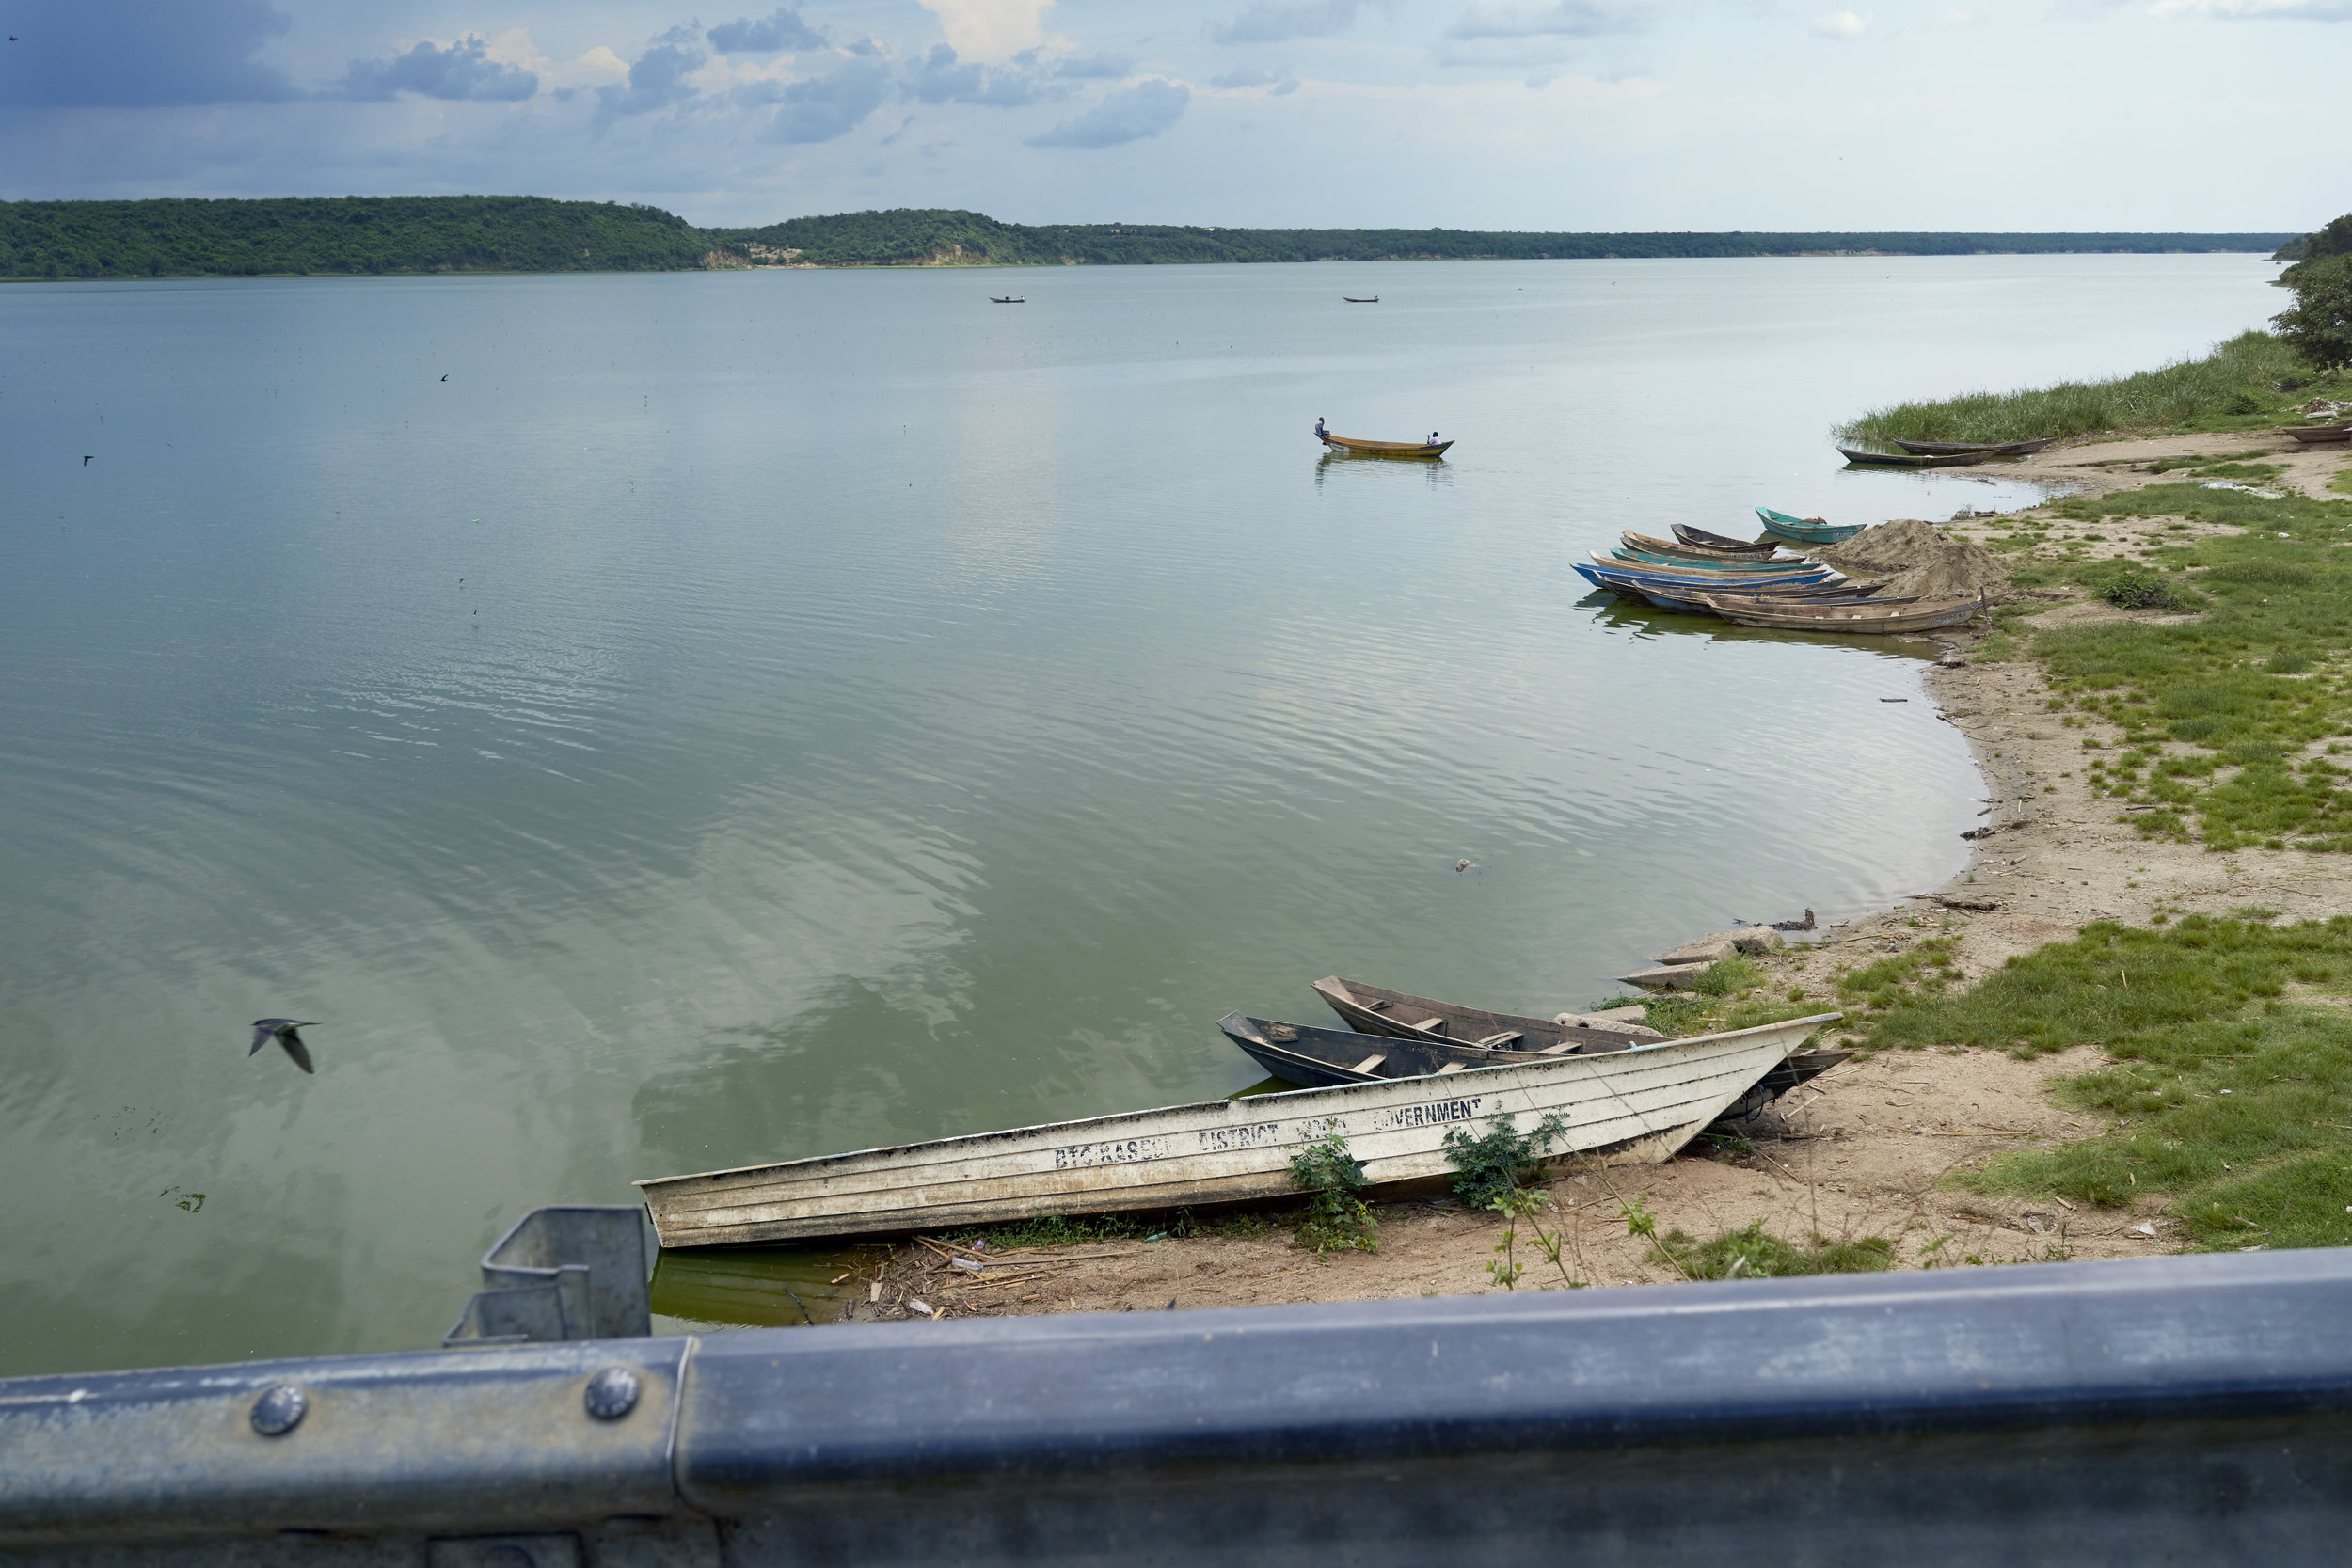 A view over the channel connecting Lake Edward and Lake George in Queen Elizabeth National Park, Western Uganda.